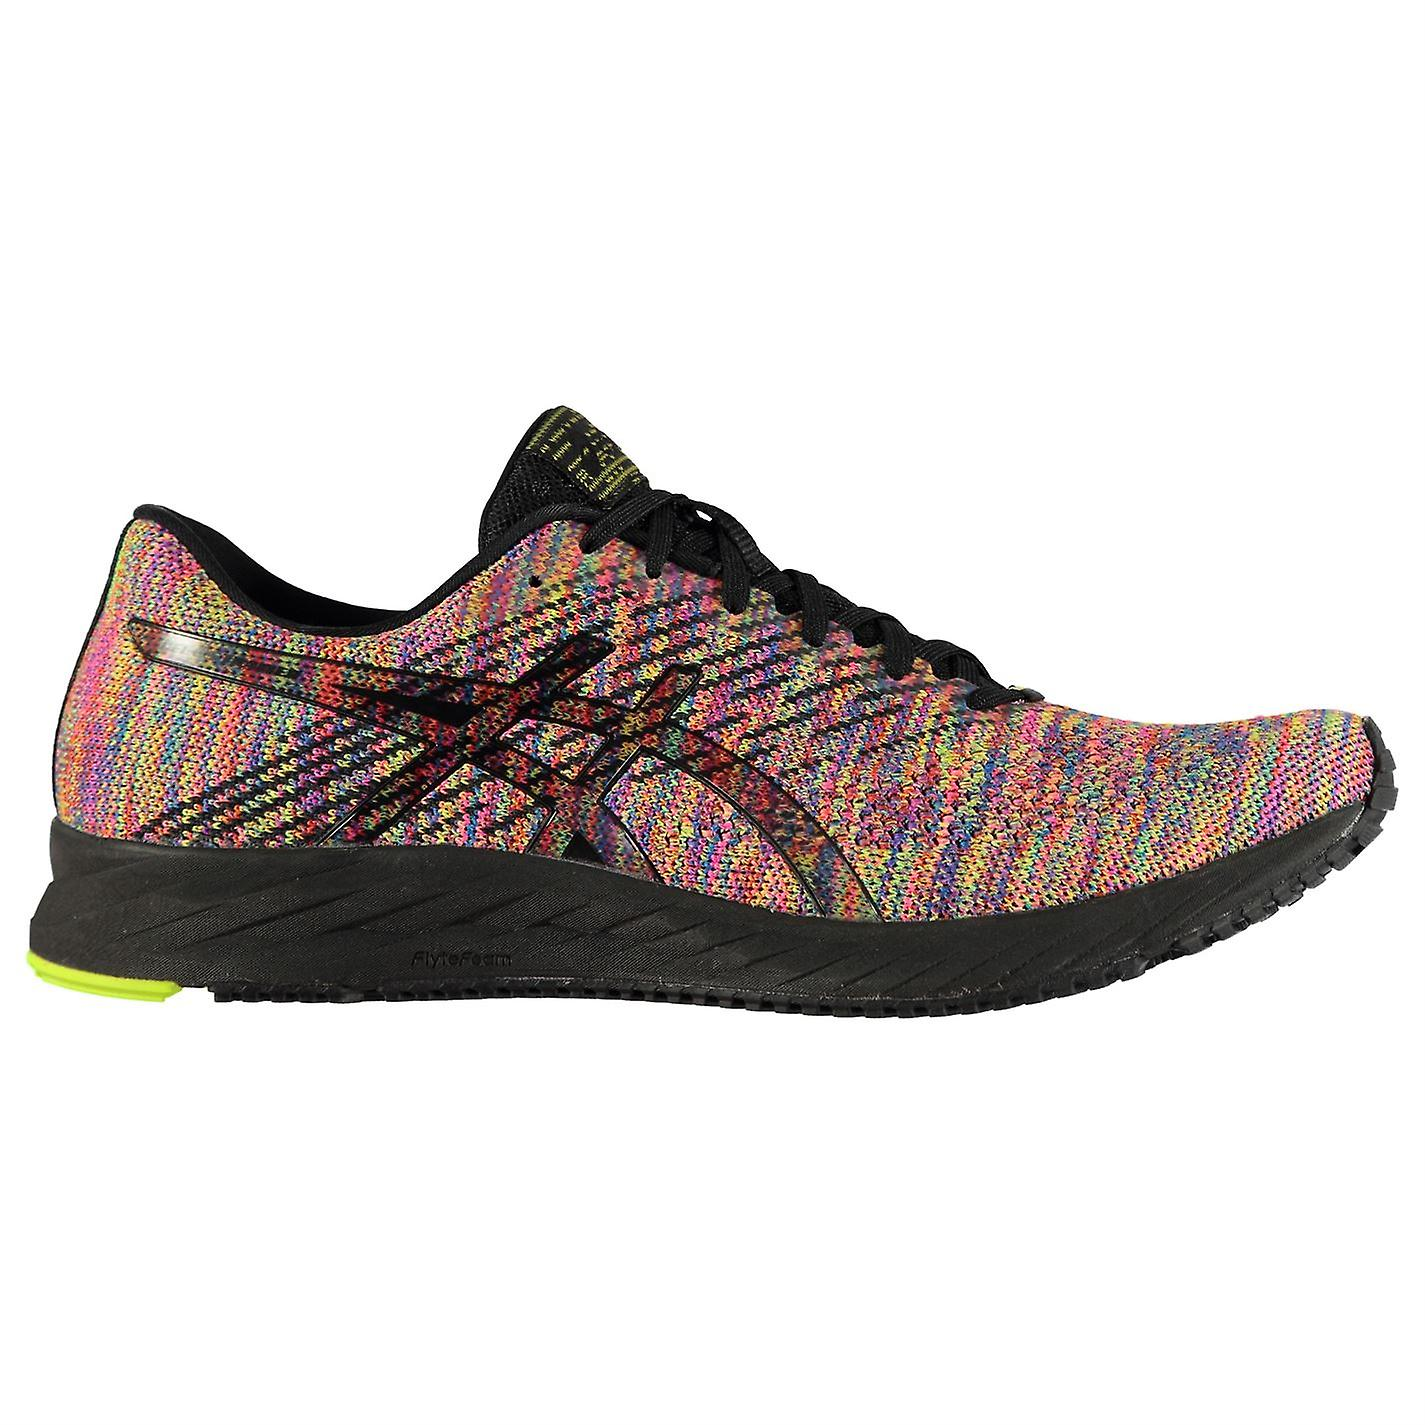 Asics Mens Sports Pompes chaussures de course Turnchaussures DS Trainers SP